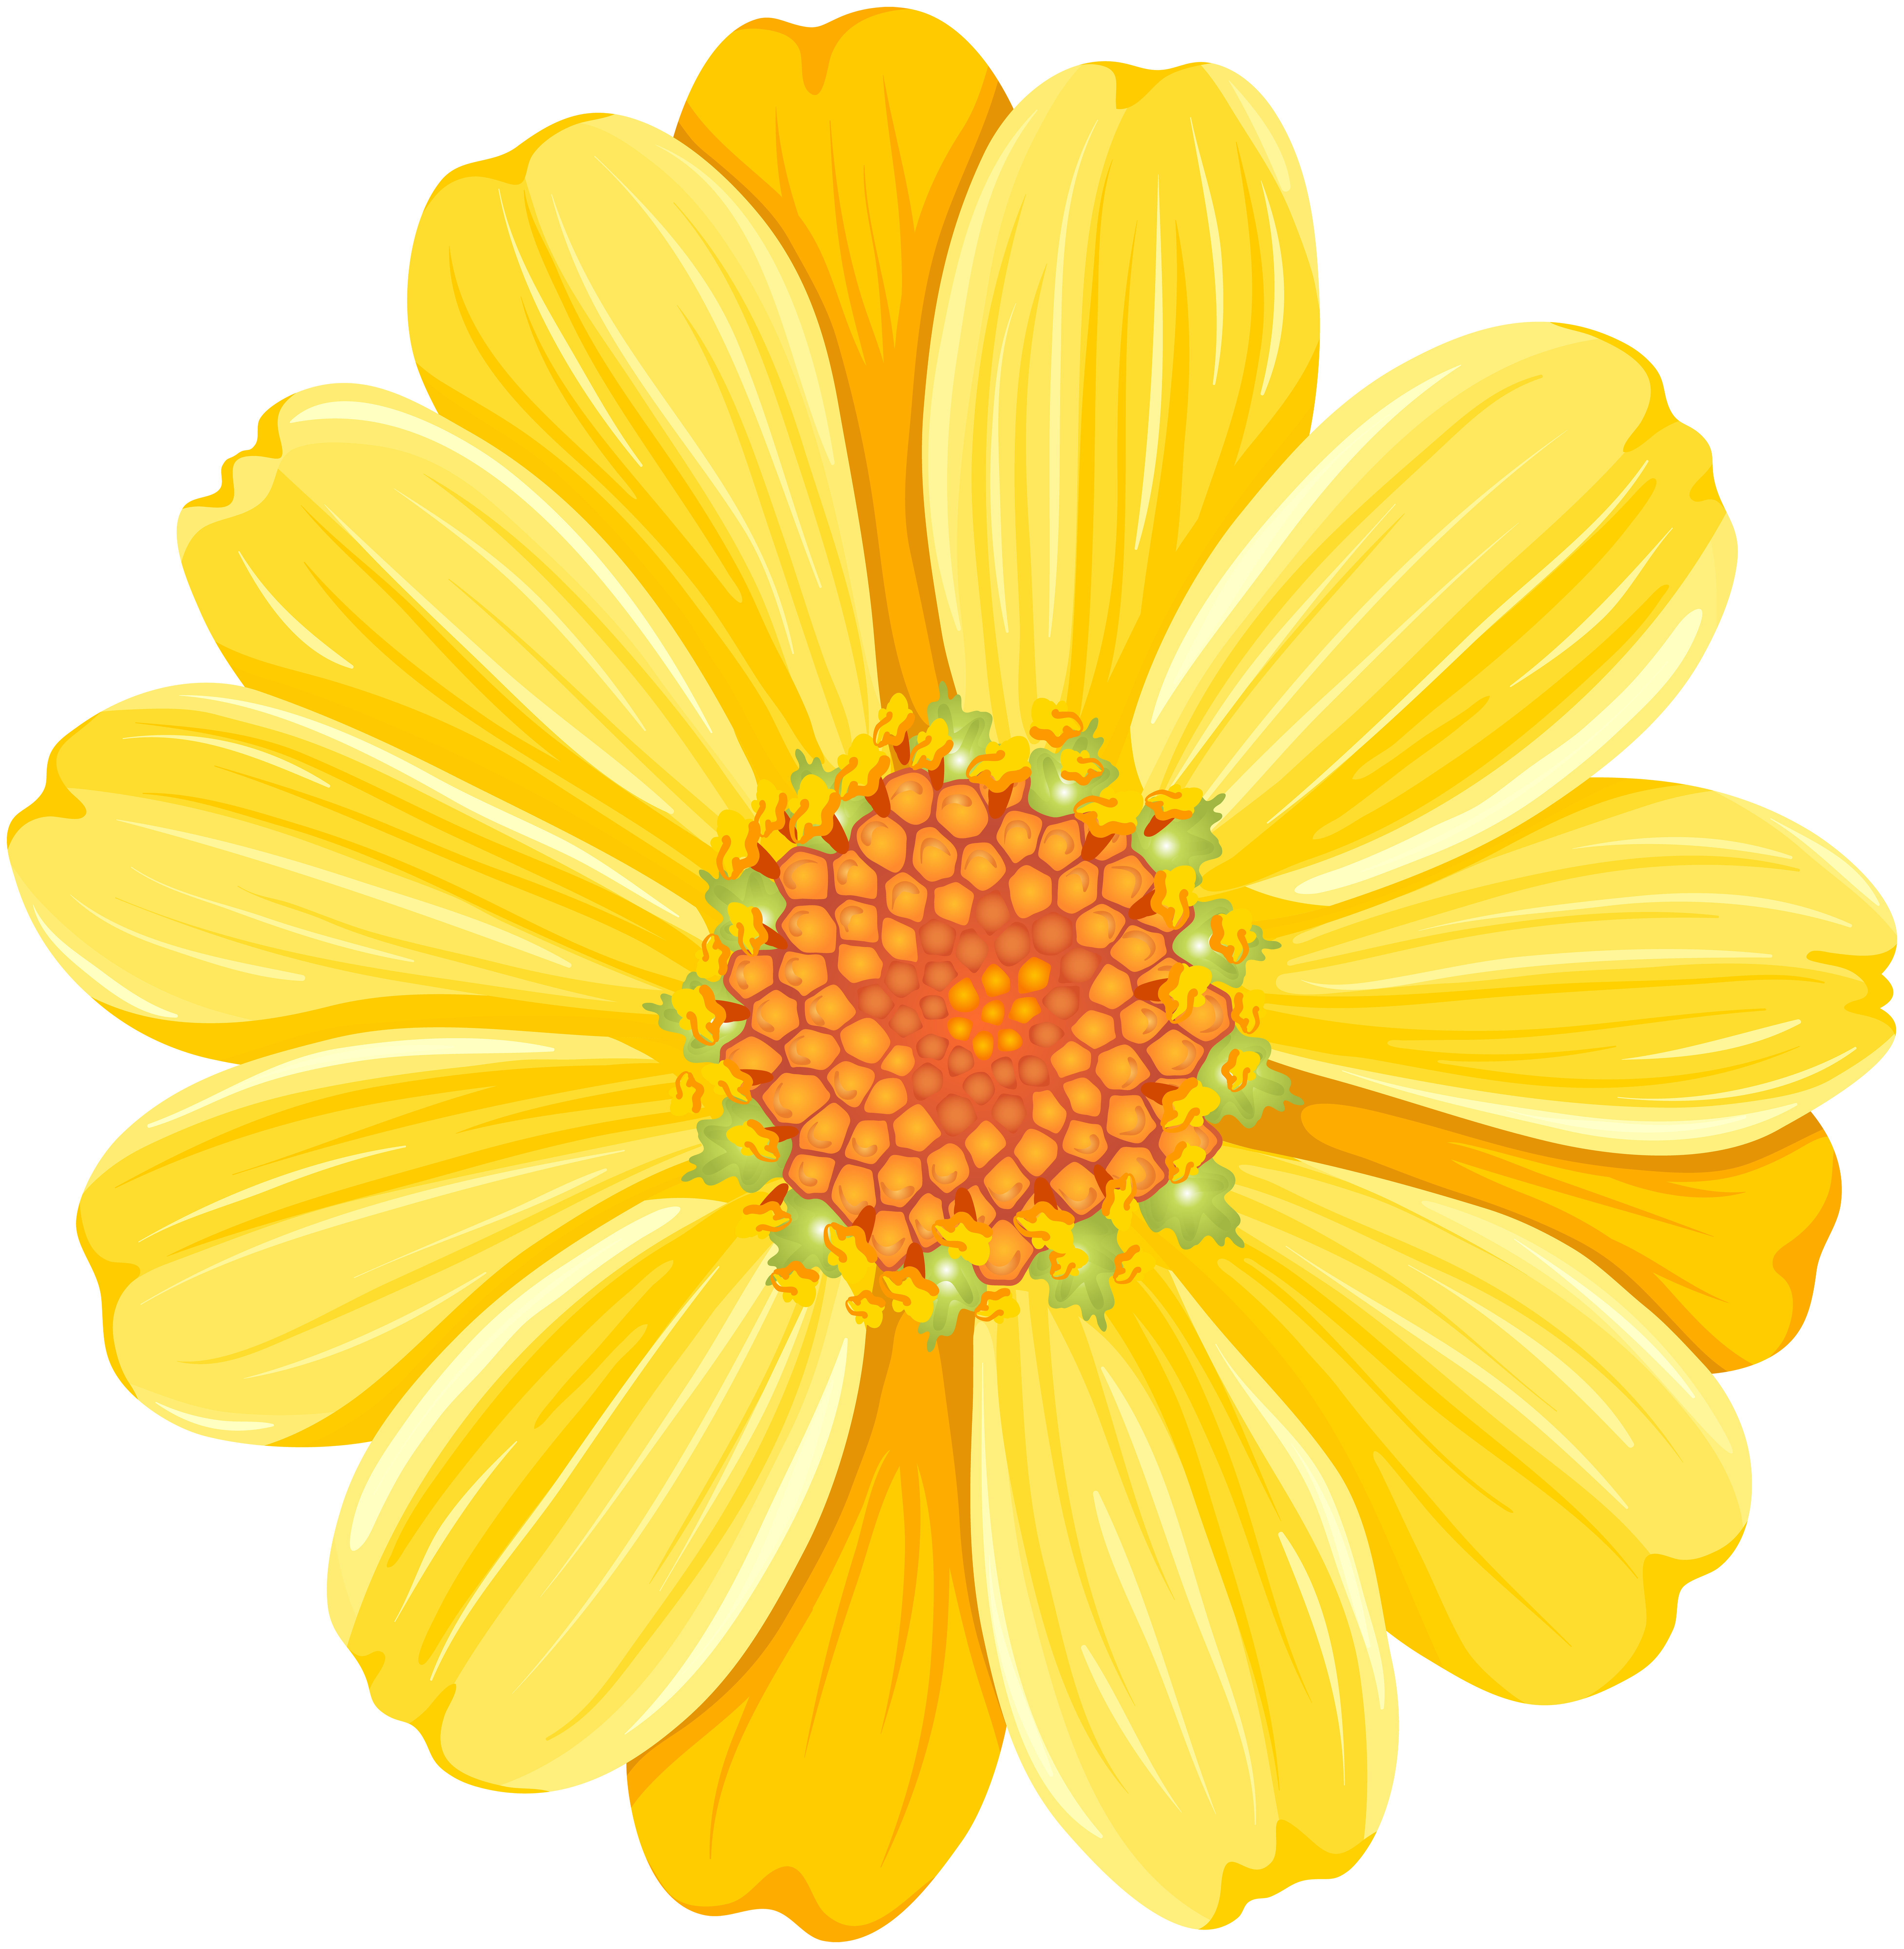 Yellow daisy clipart free banner black and white stock Yellow Daisy PNG Transparent Clip Art Image | Gallery ... banner black and white stock